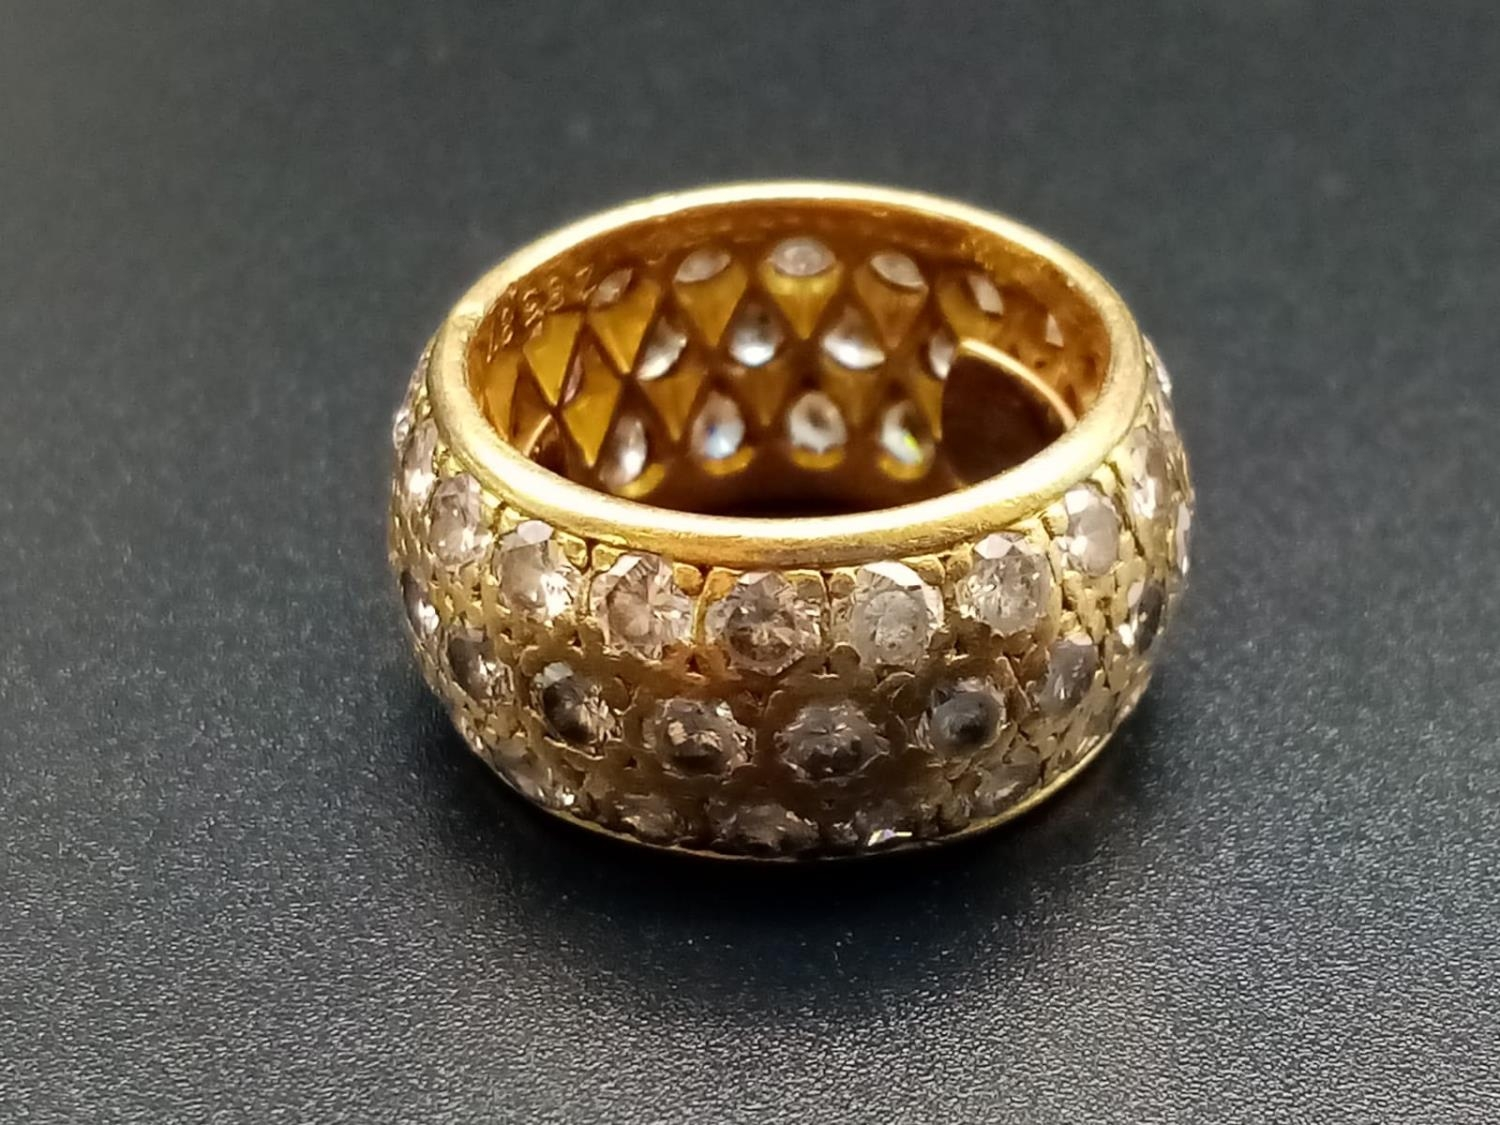 AN 18K ROSE GOLD BAND RING ENCRUSTED WITH DIAMOND STONES (APPROX 4CT) 10.3gms size k/l